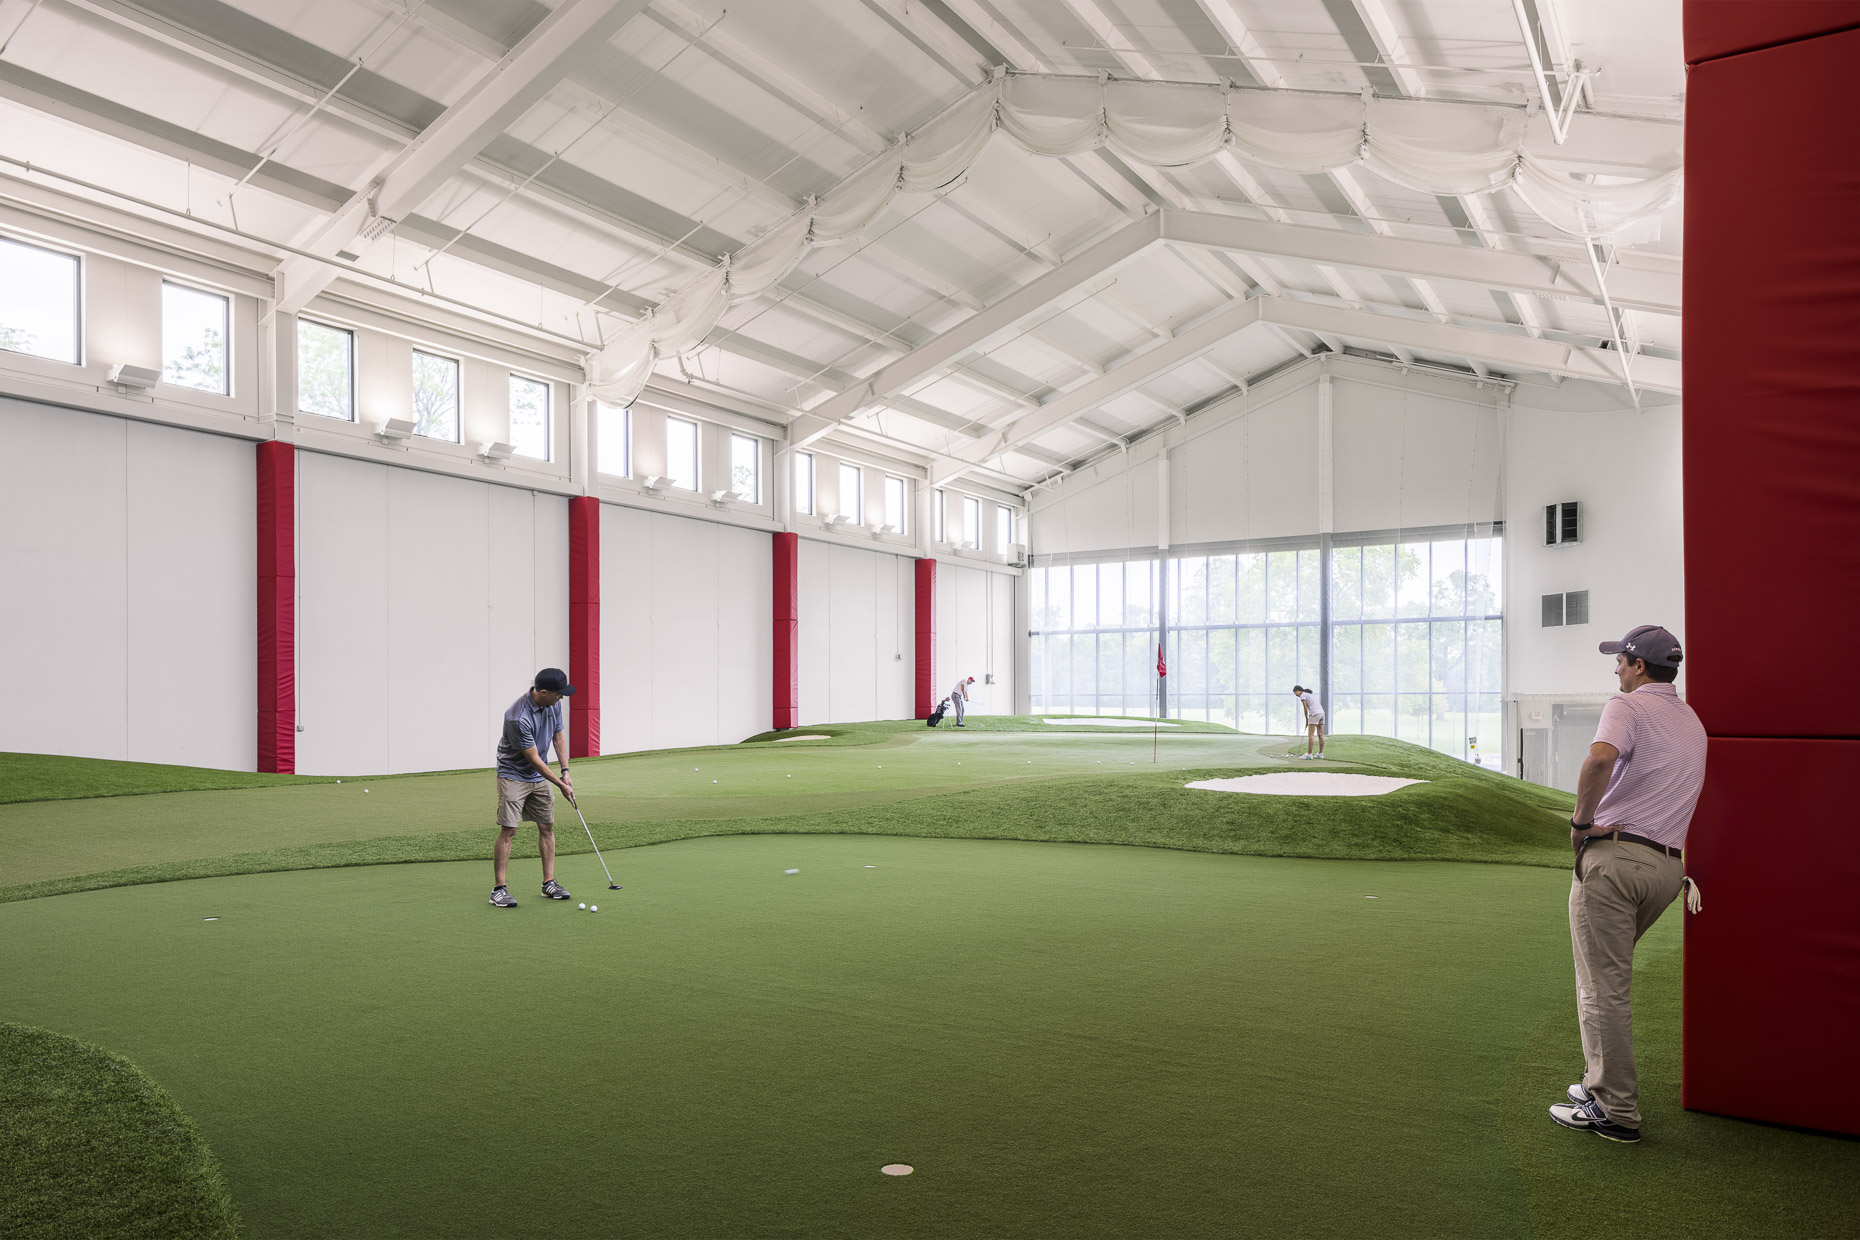 OSU Jane and Walt Dennis Golf Performance Center by GBBN photographed by Brad Feinknopf based in Columbus, Ohio